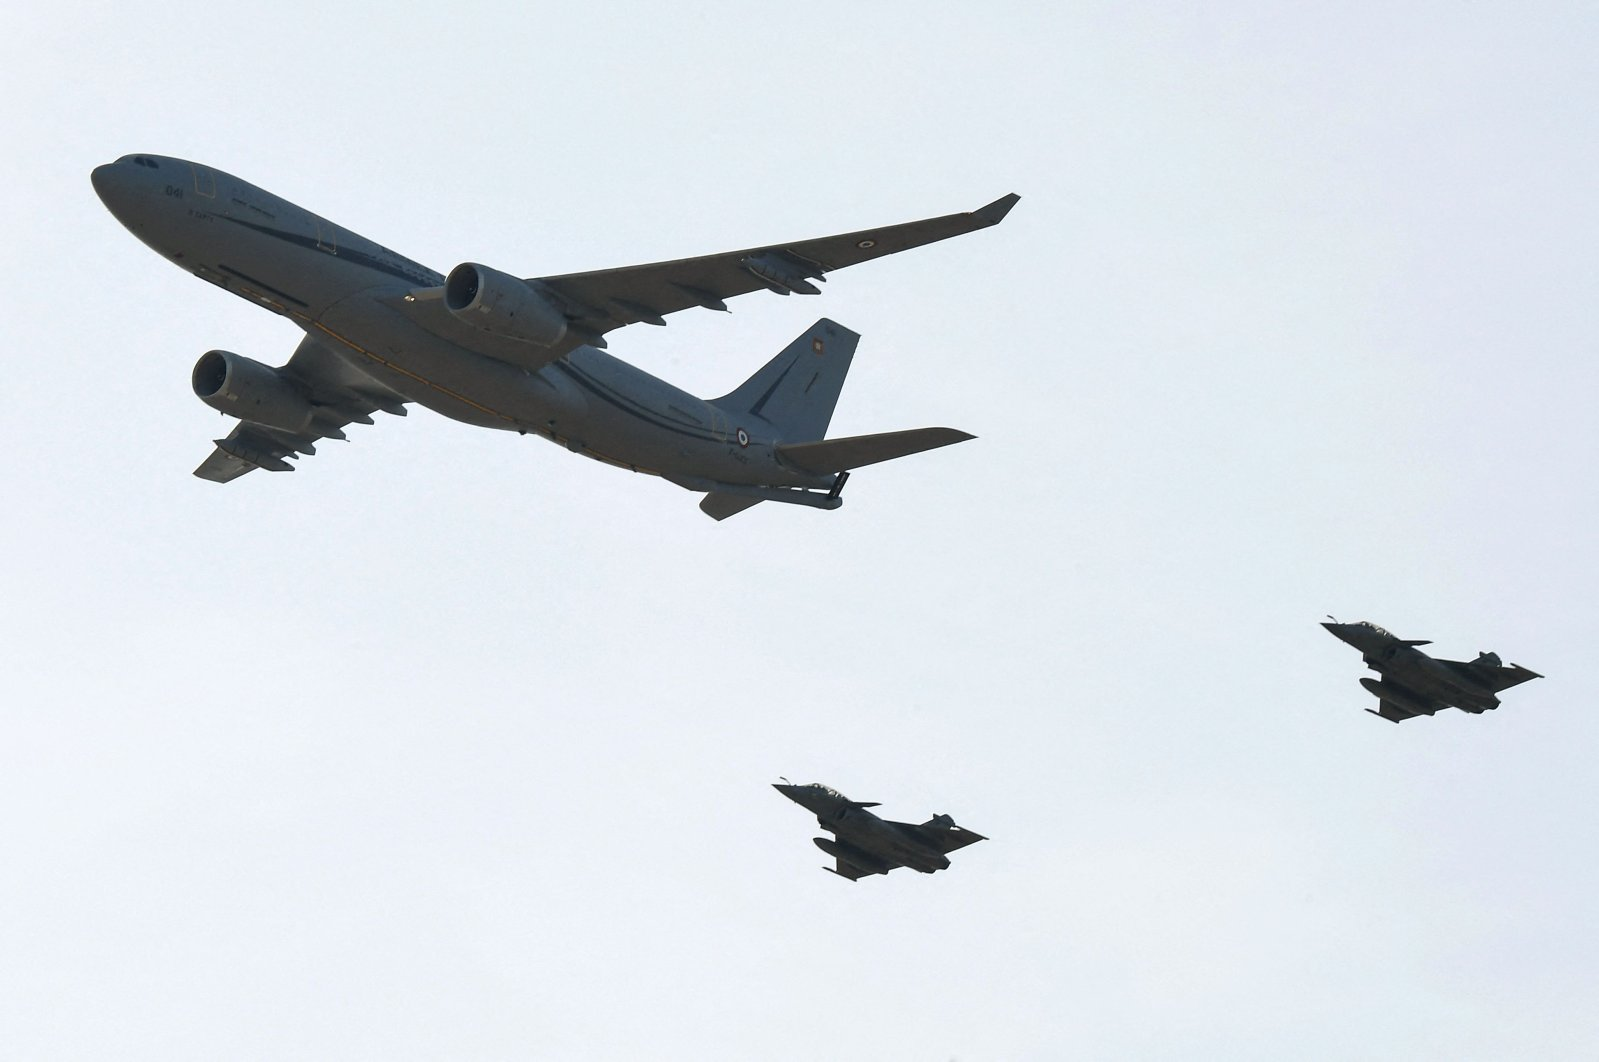 A French Air Force new Airbus A330 Multi Role Tanker Transport (MRTT) phoenix aircraft (L), and its two Rafale escort jets, fly over the Istres military base in southern France, Oct. 19, 2018. (AFP Photo)